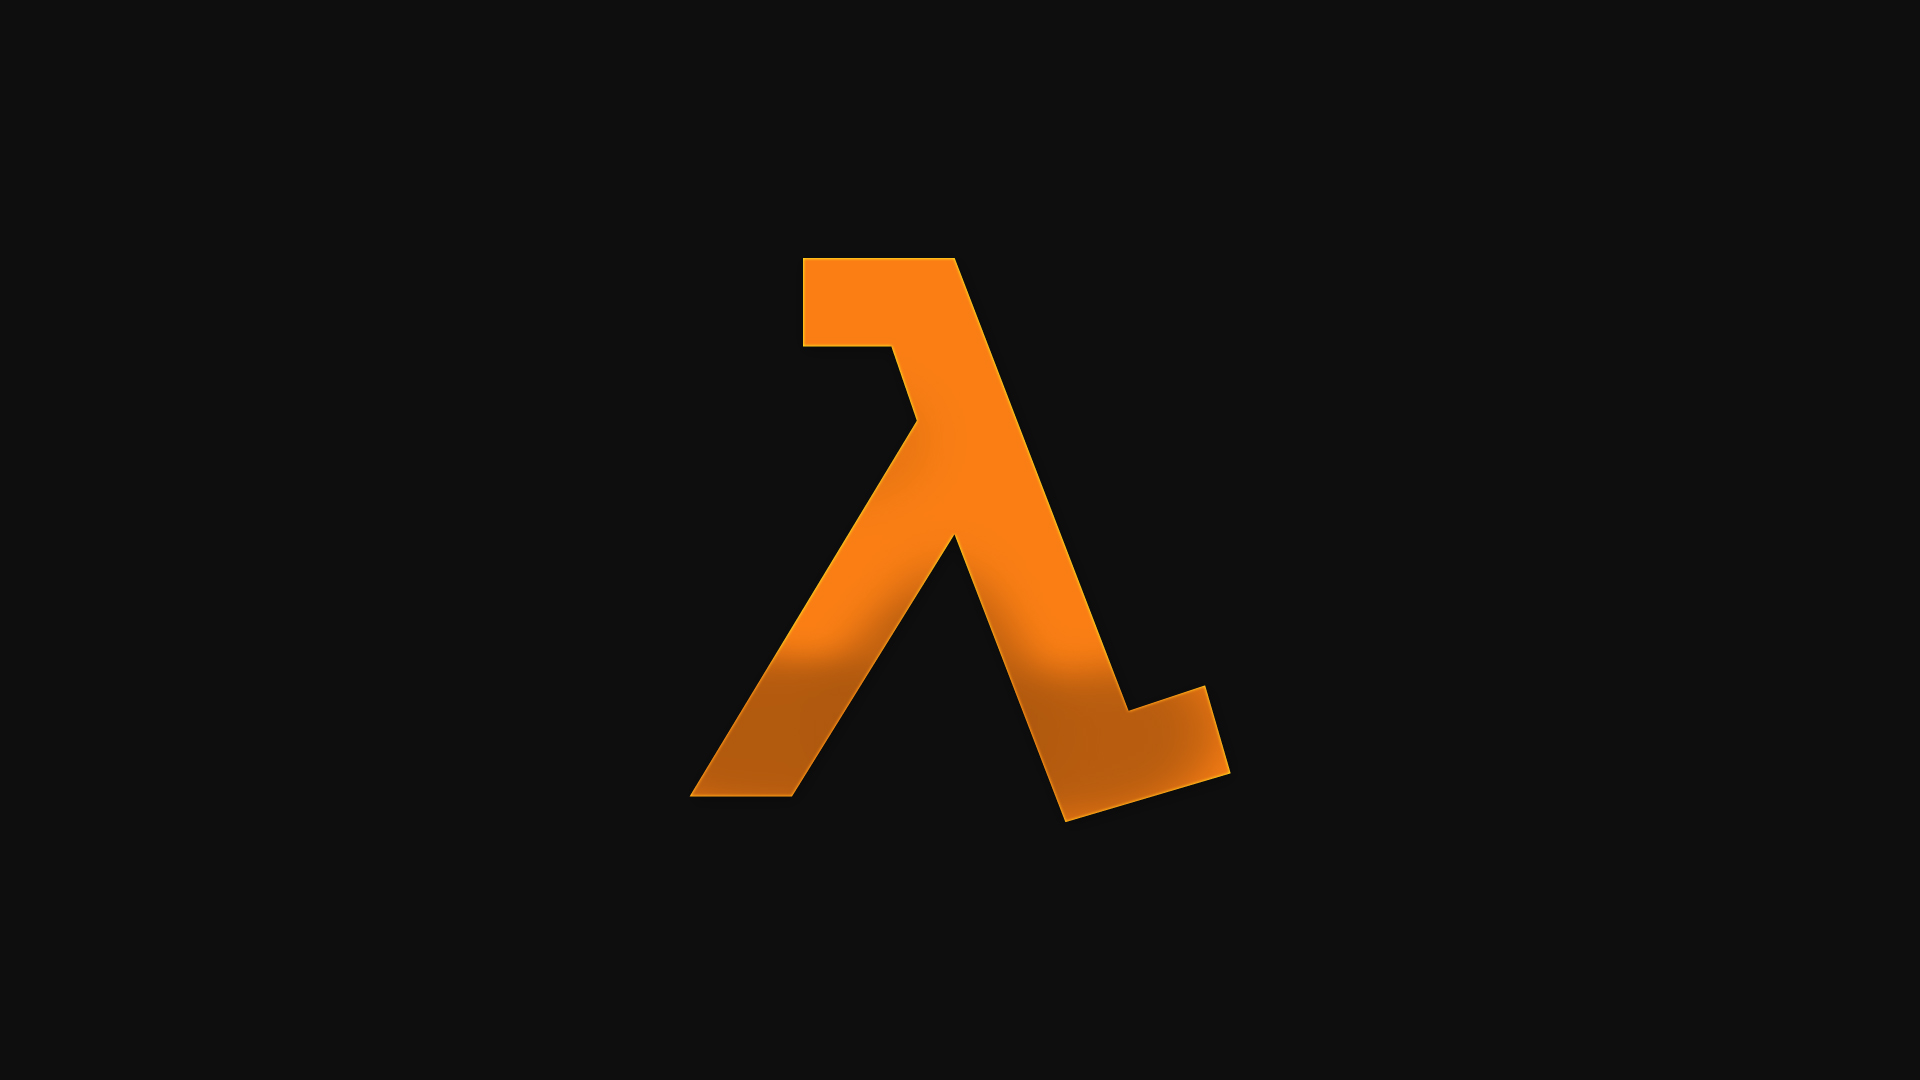 Half Life Logo Res: 1920x1080 HD / Size:196kb. Views: 15037